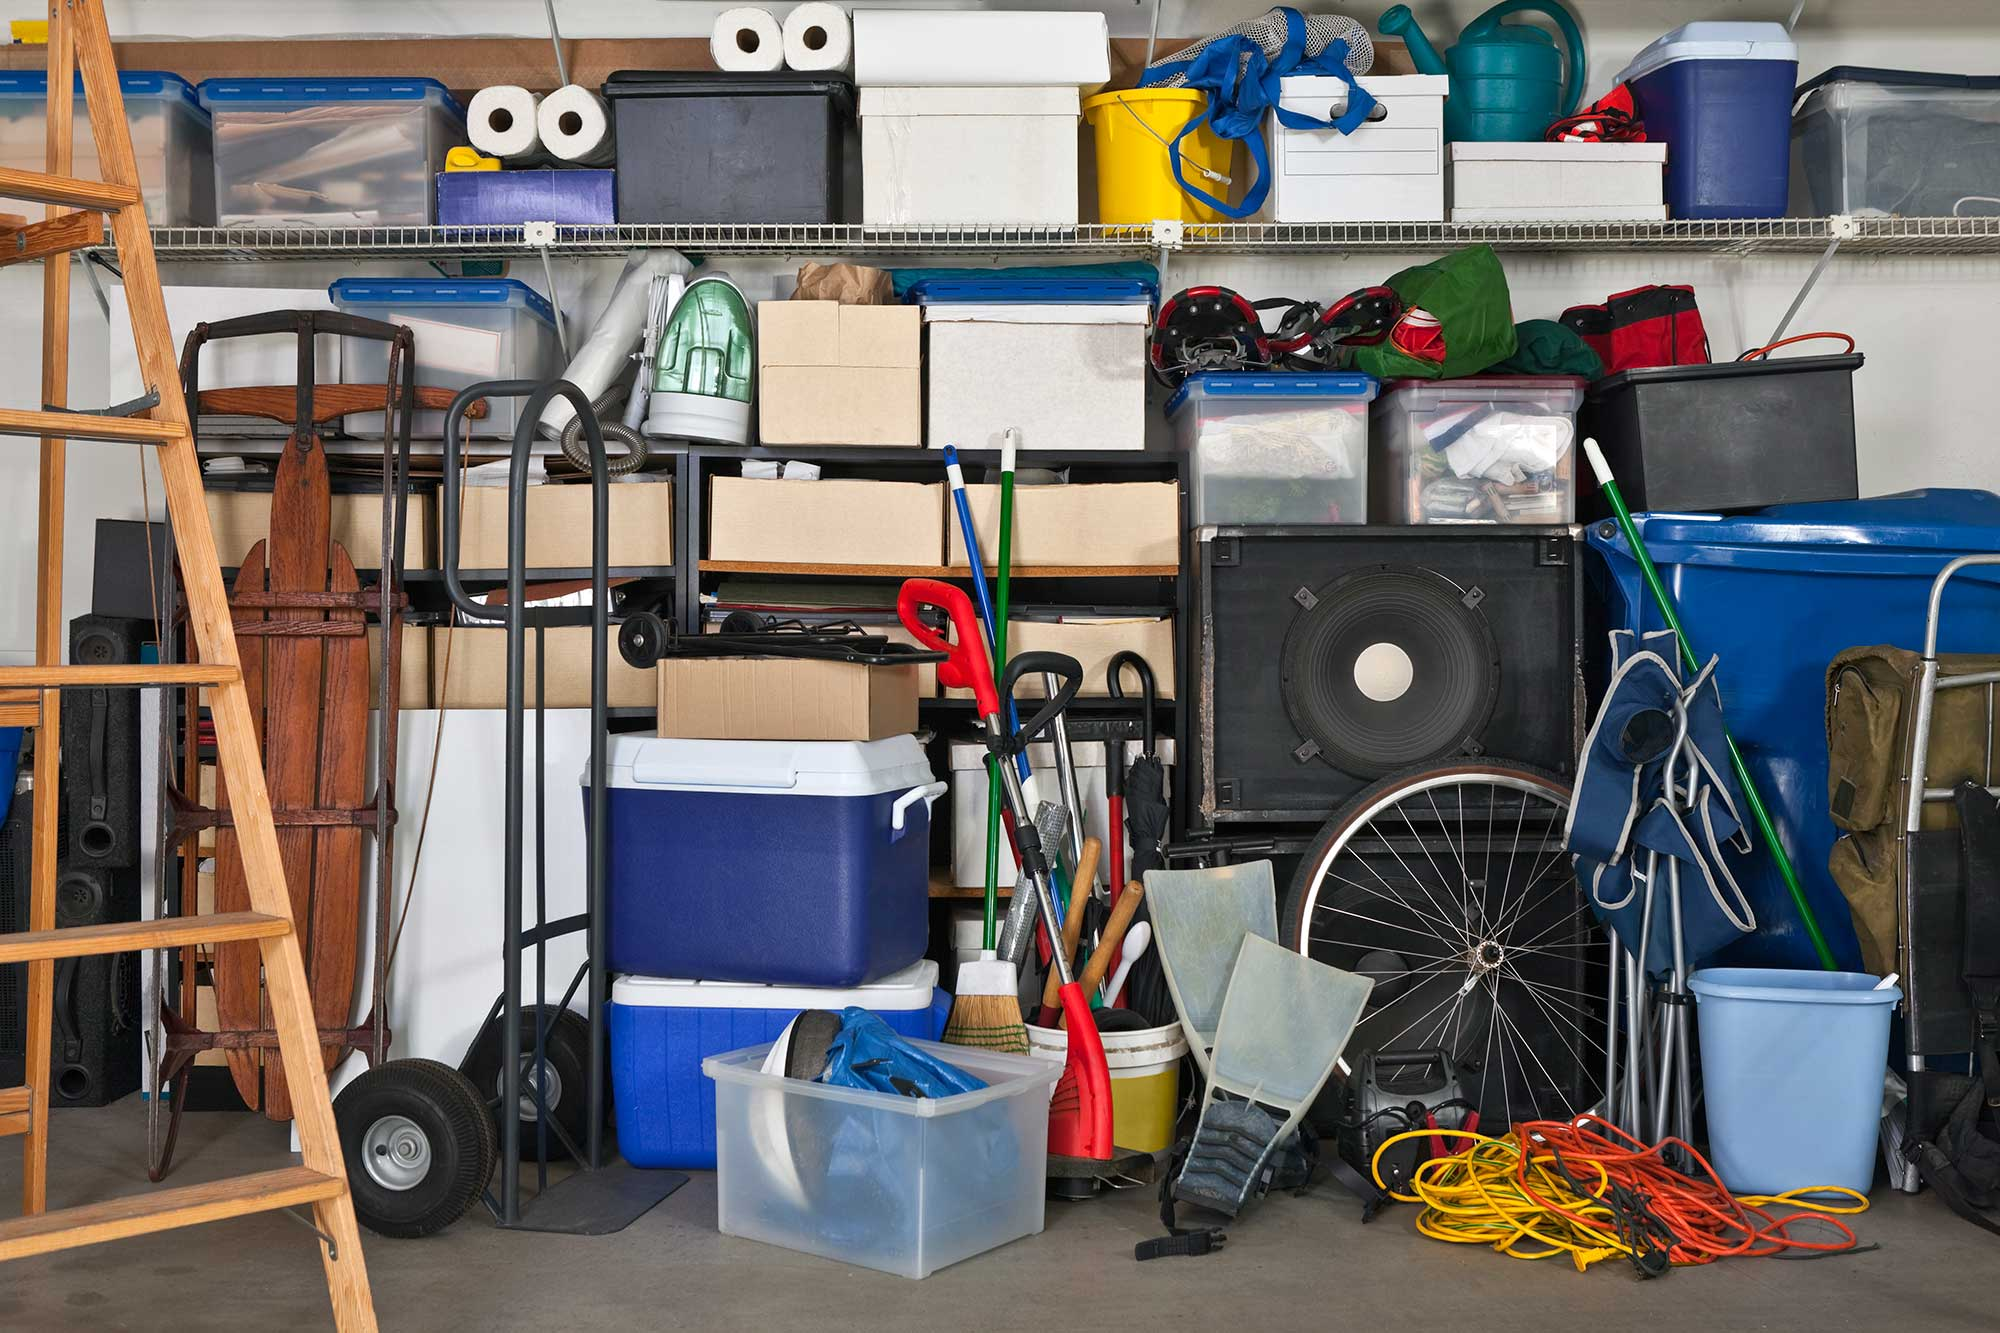 Garage-Organization-Ideas.jpg